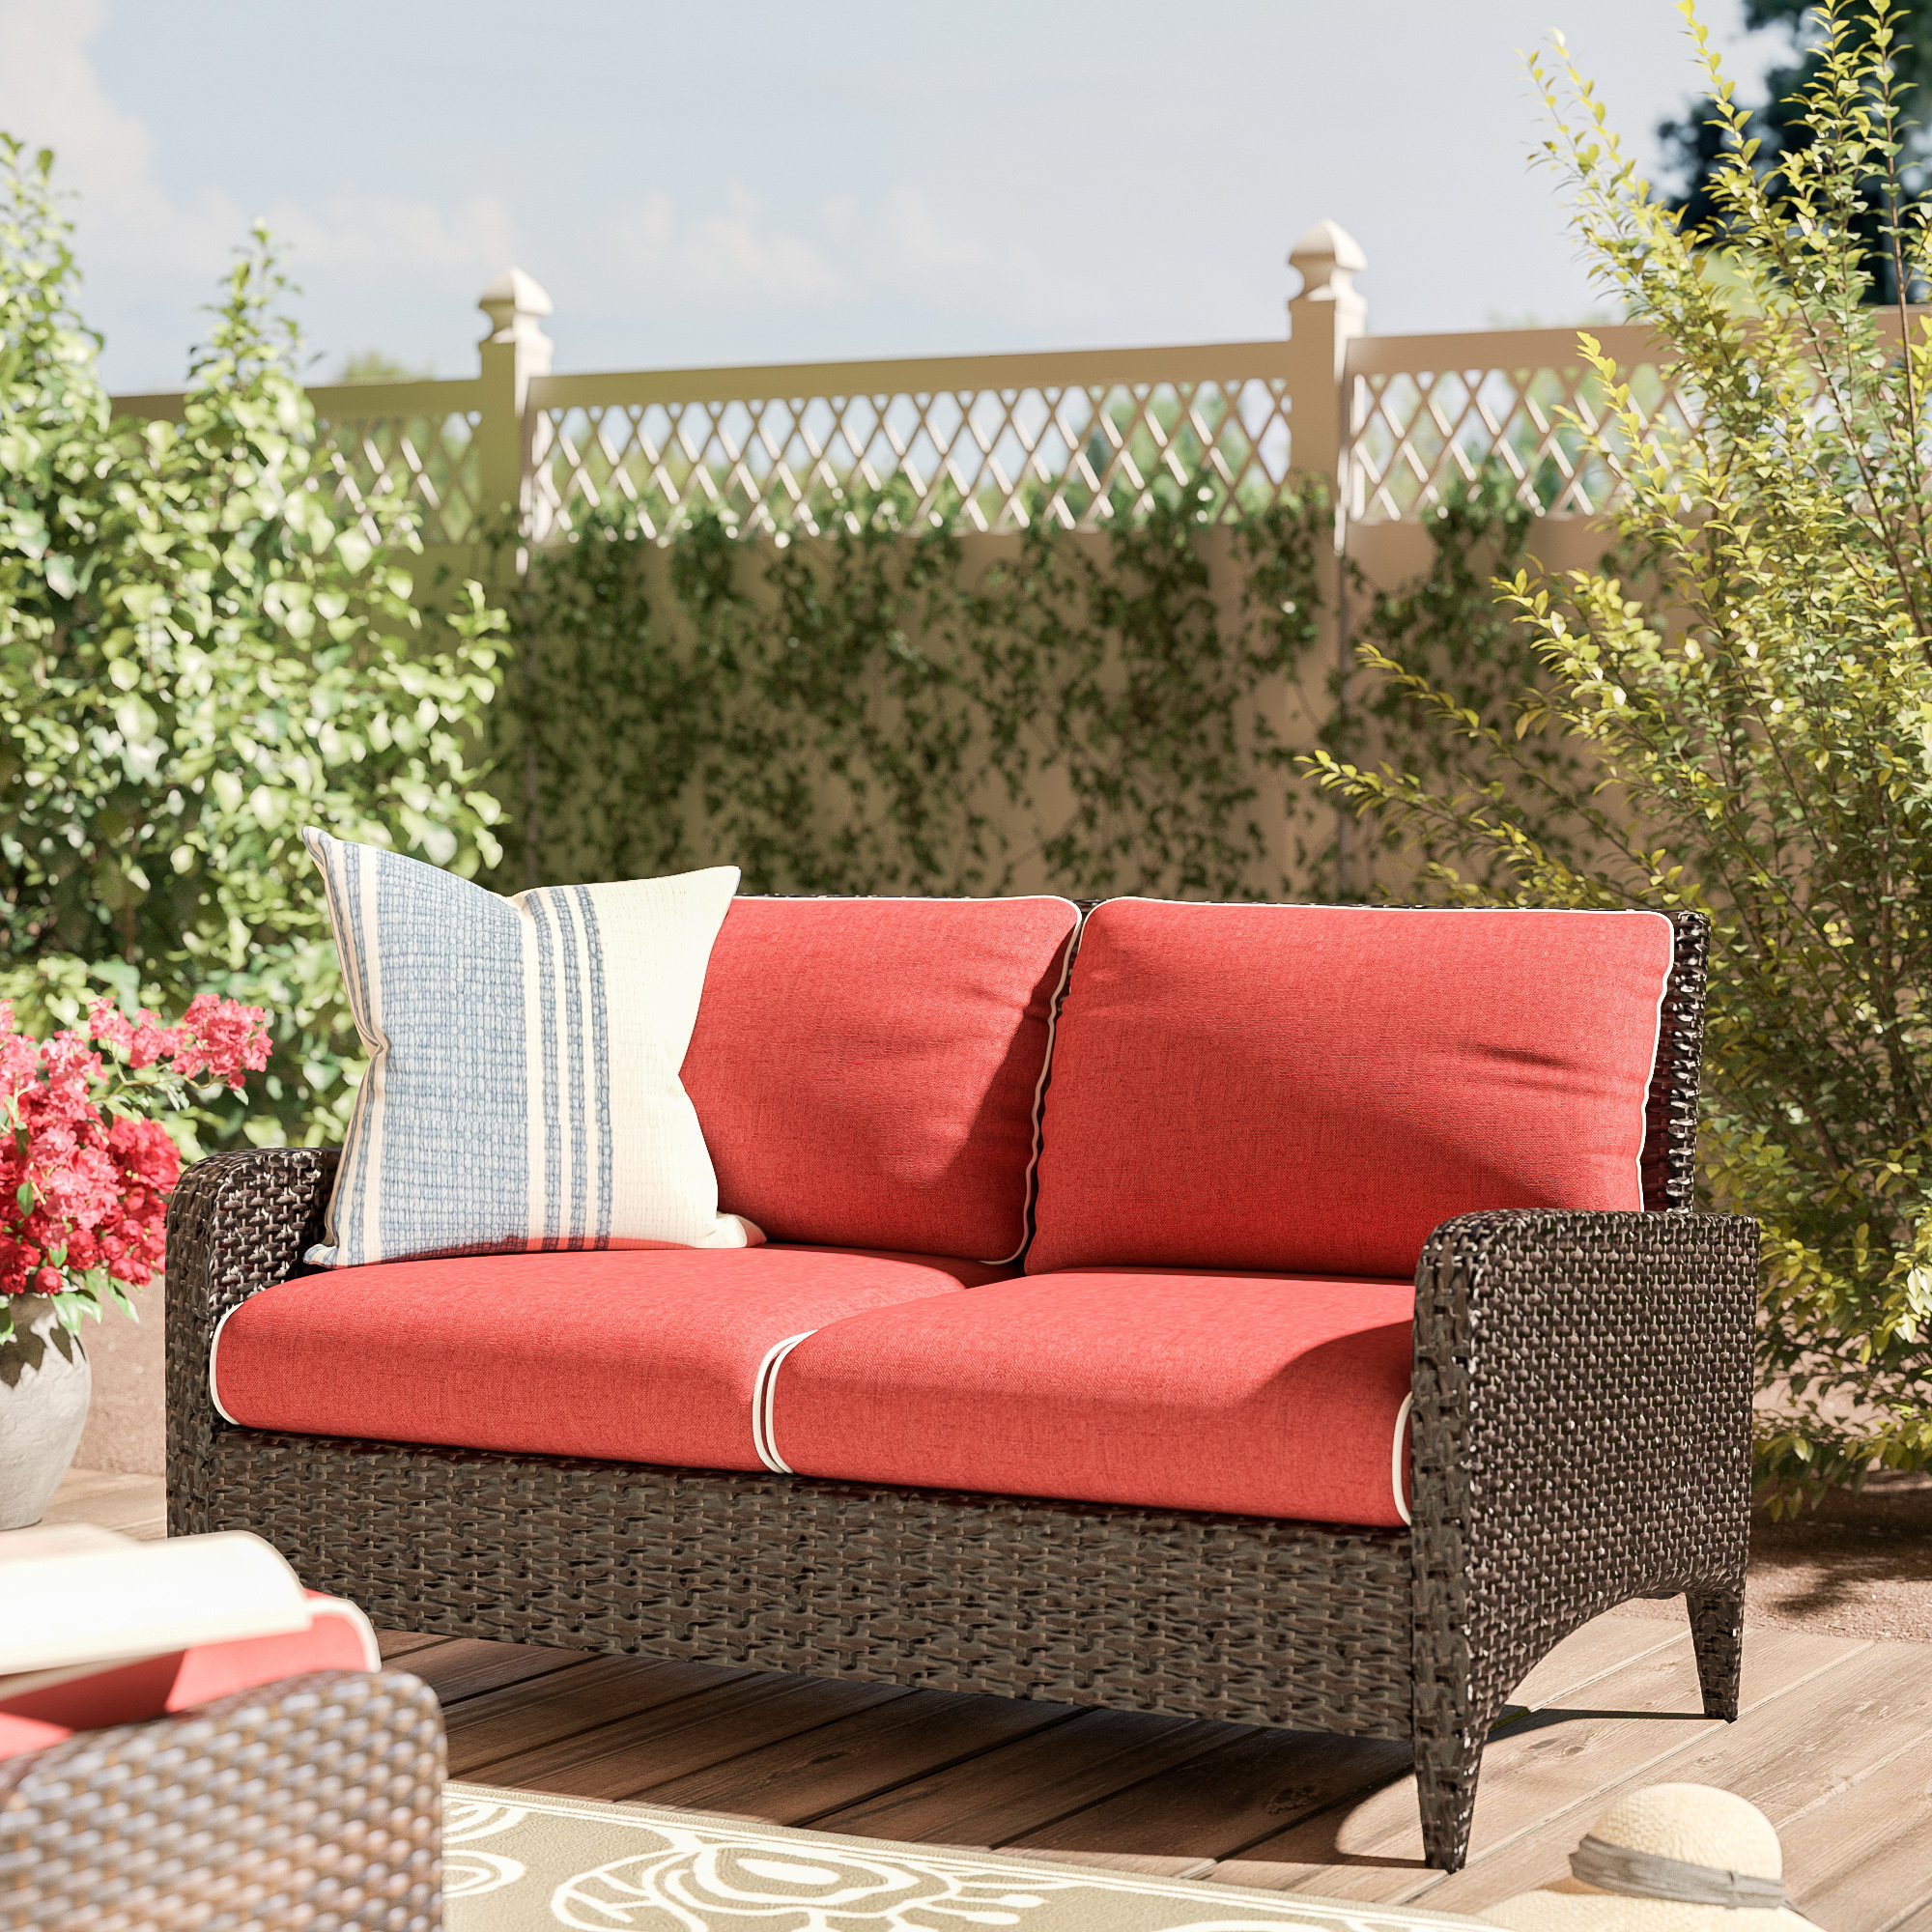 2020 Tim X Back Patio Loveseats With Cushions In Patio Loveseat With Ottoman (View 8 of 20)